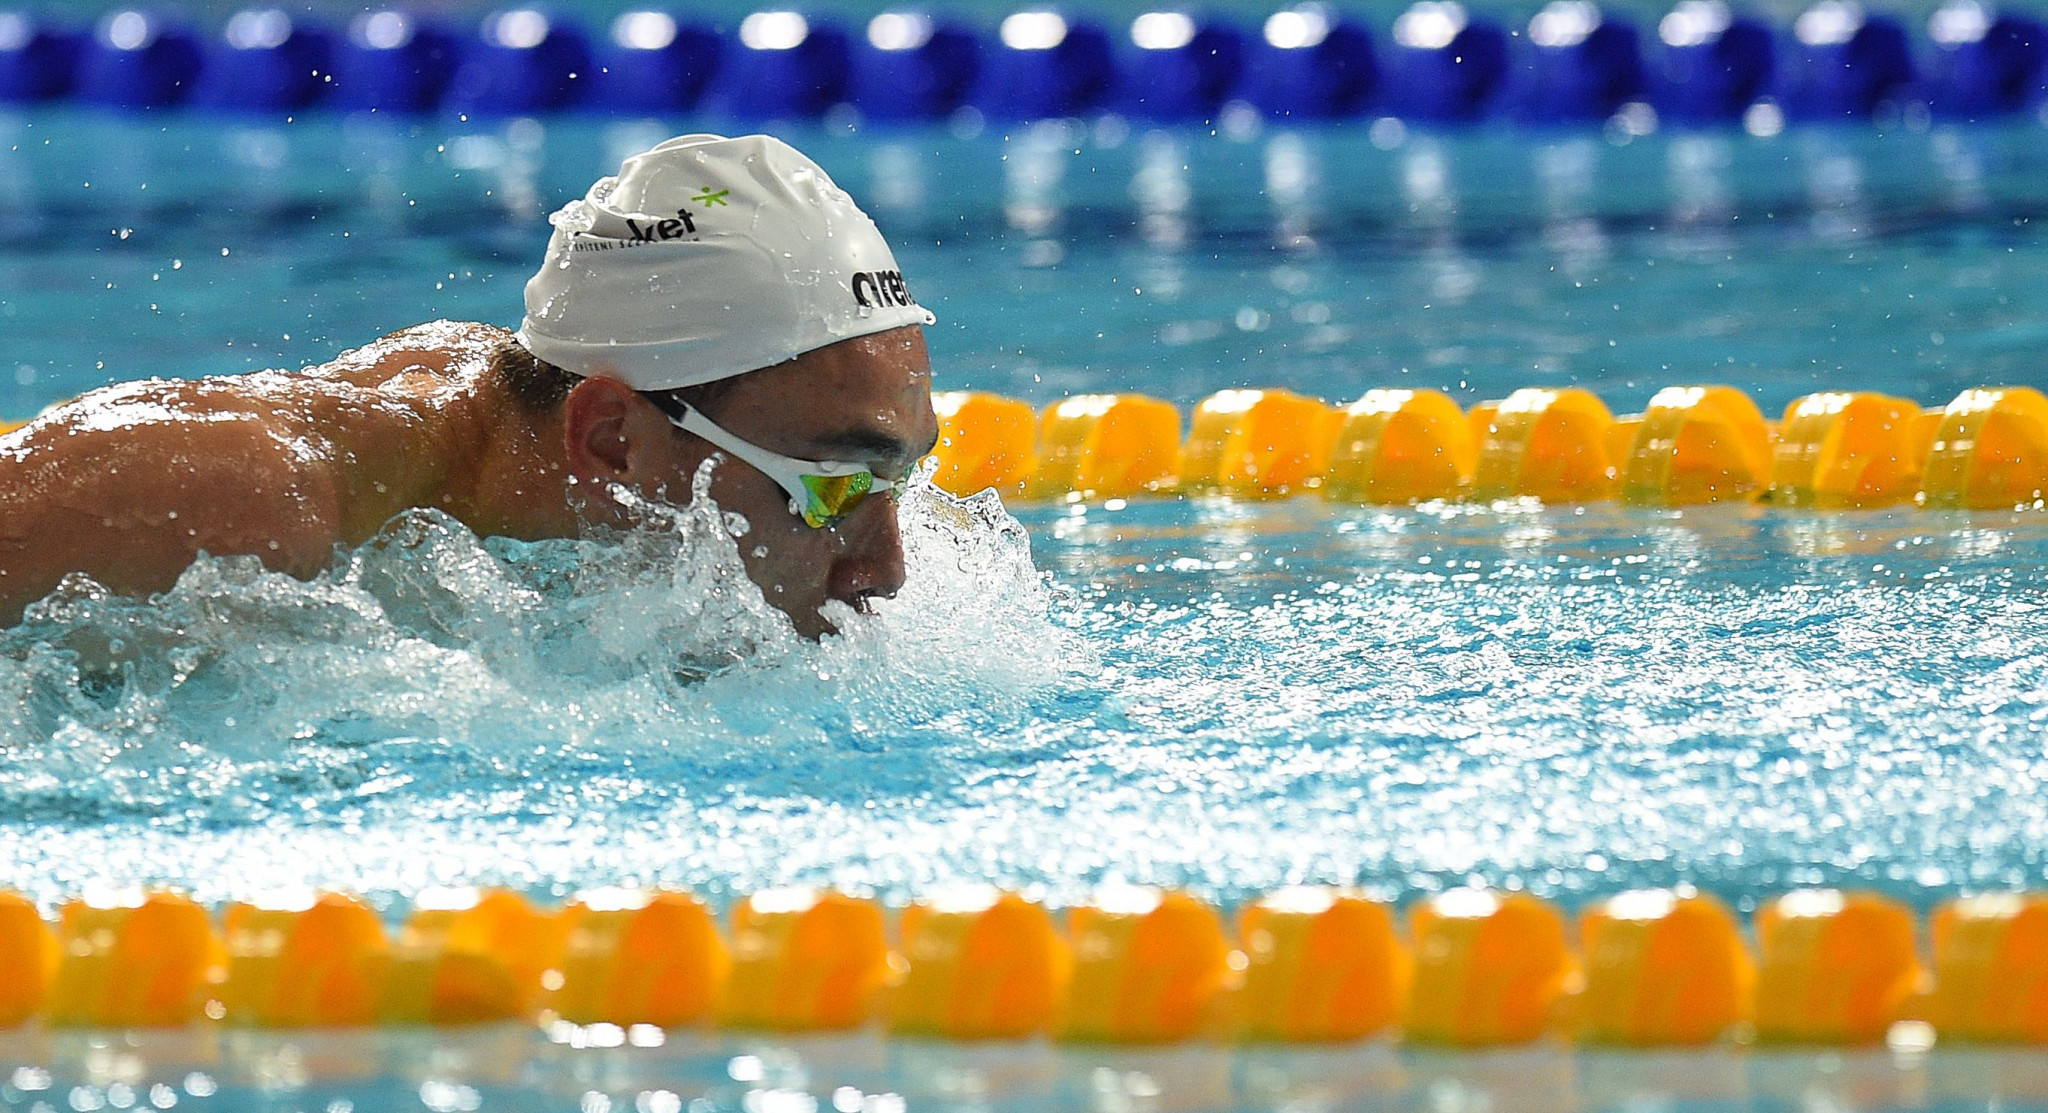 Milák claims impressive win at European Swimming Championships on golden night for hosts Great Britain